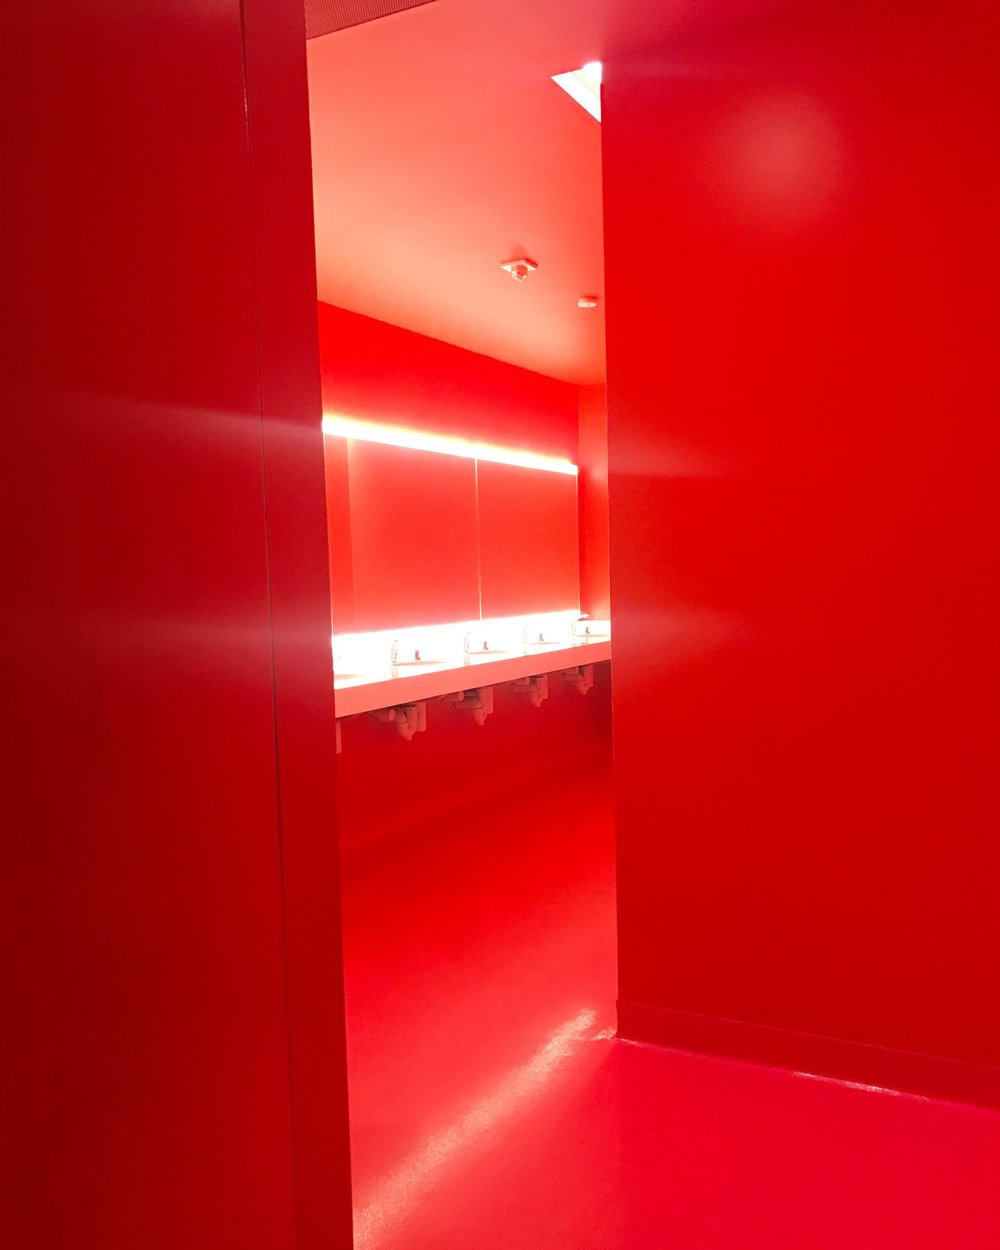 Is it weird that the bathroom is one of my favorite things about SFMOMA?  ;)